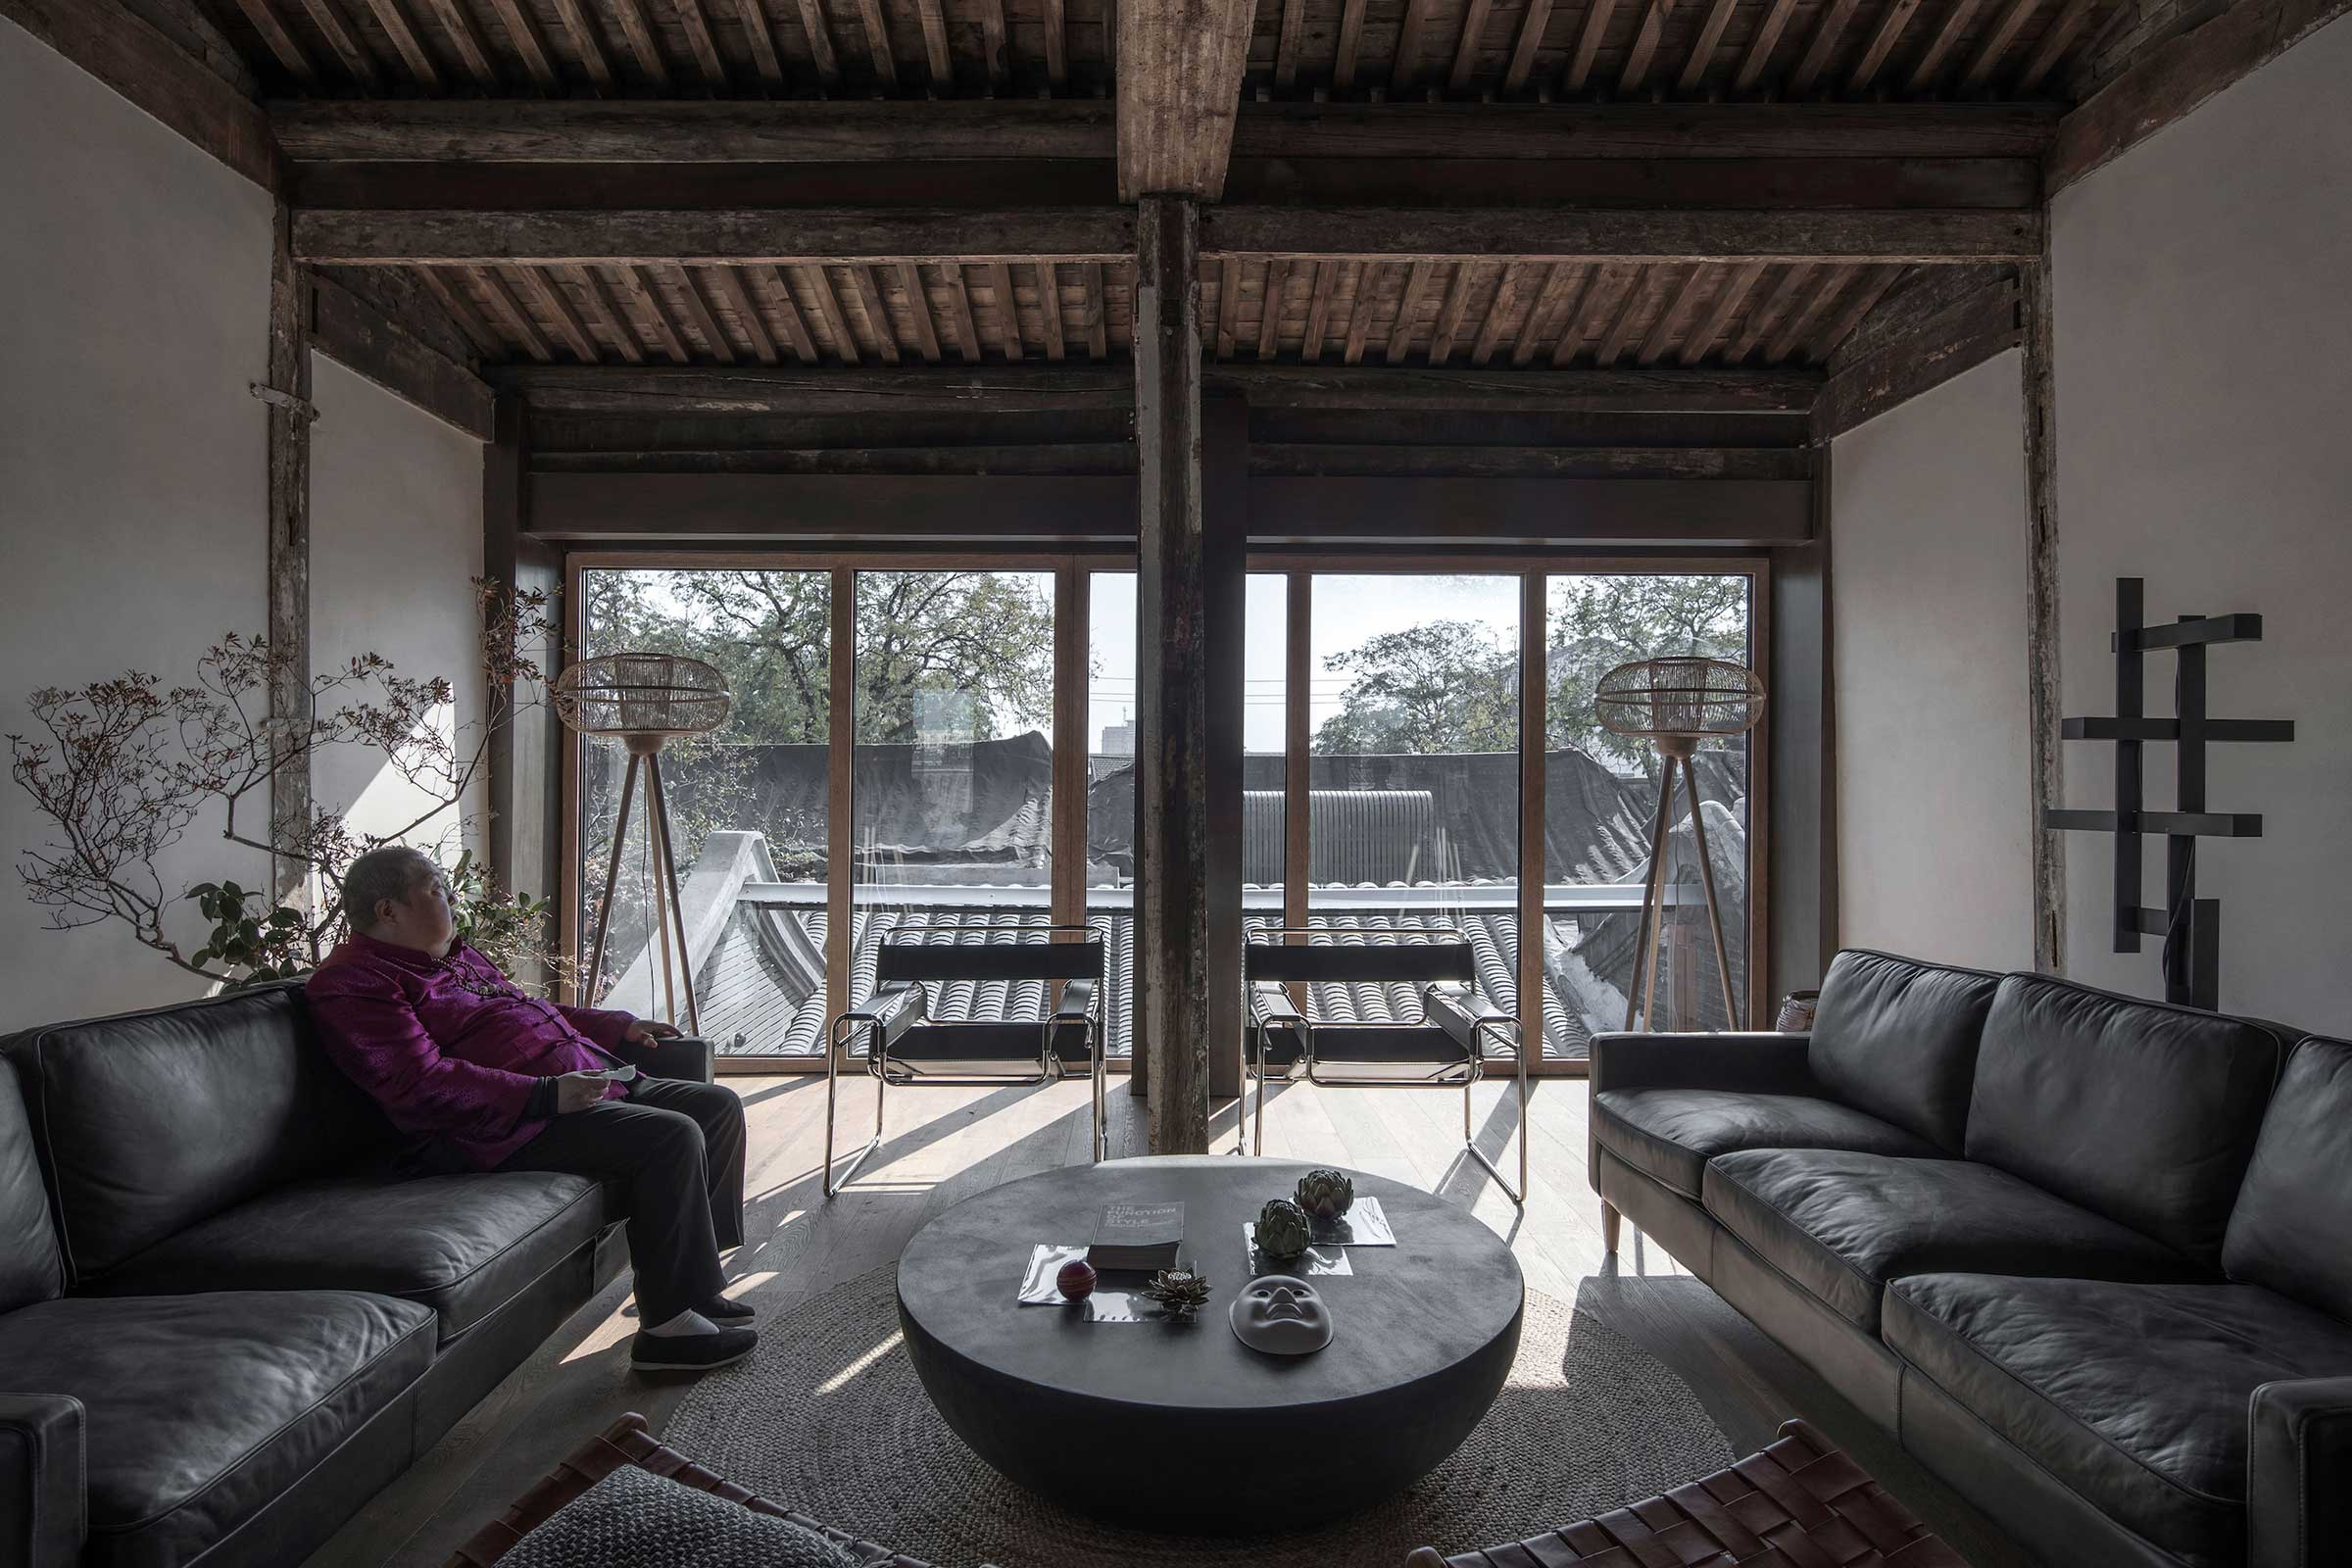 quad-house-ARCHISTRY-nolan-chao-30--second-floor-private-room.jpg